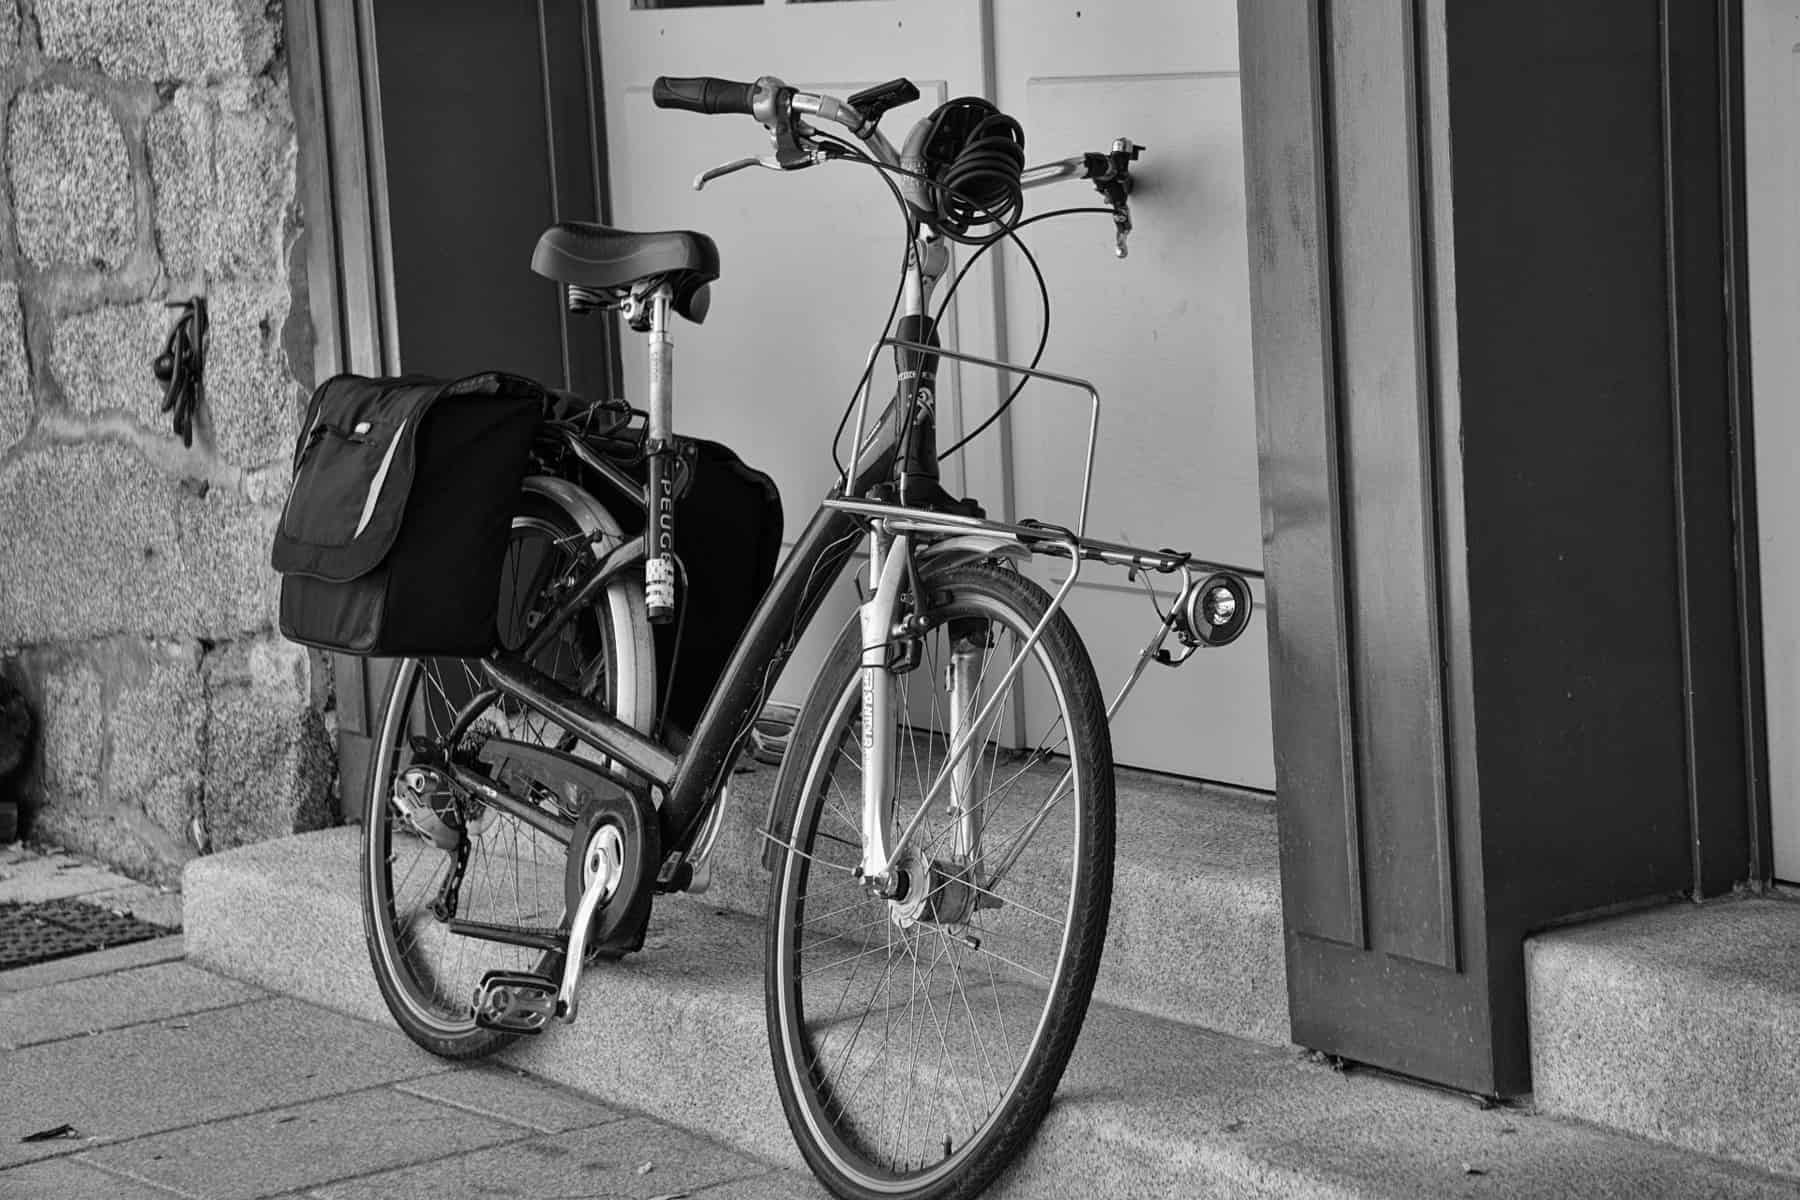 bicycle leaning against door